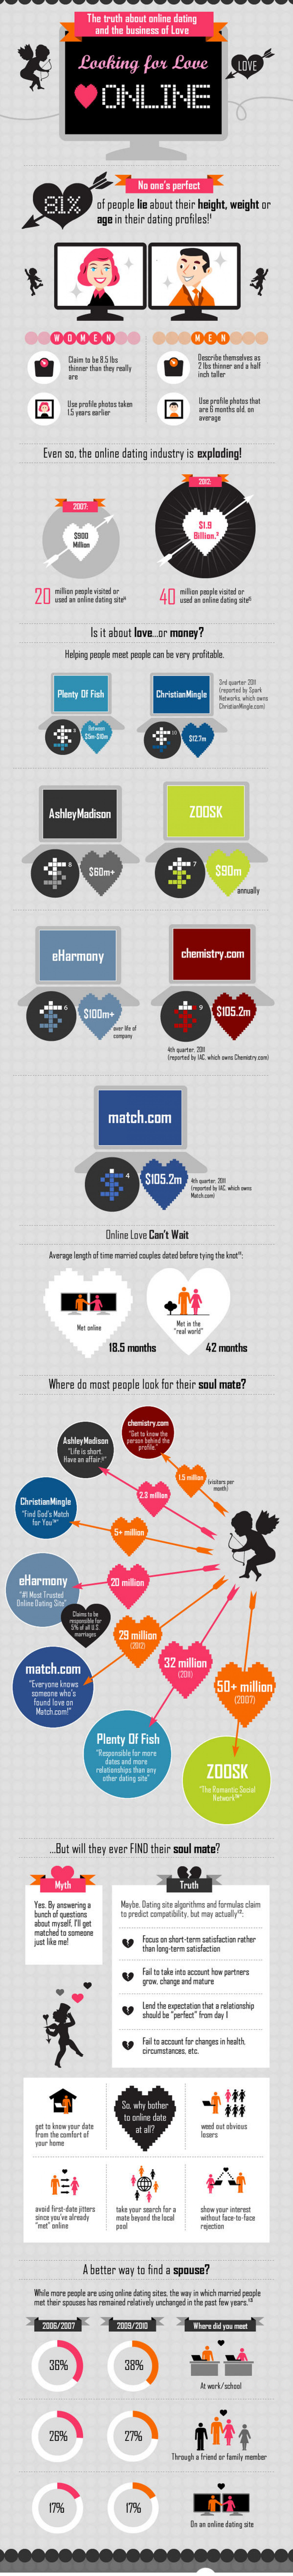 The Truth about Online Dating - Looking for Love Online? Infographic